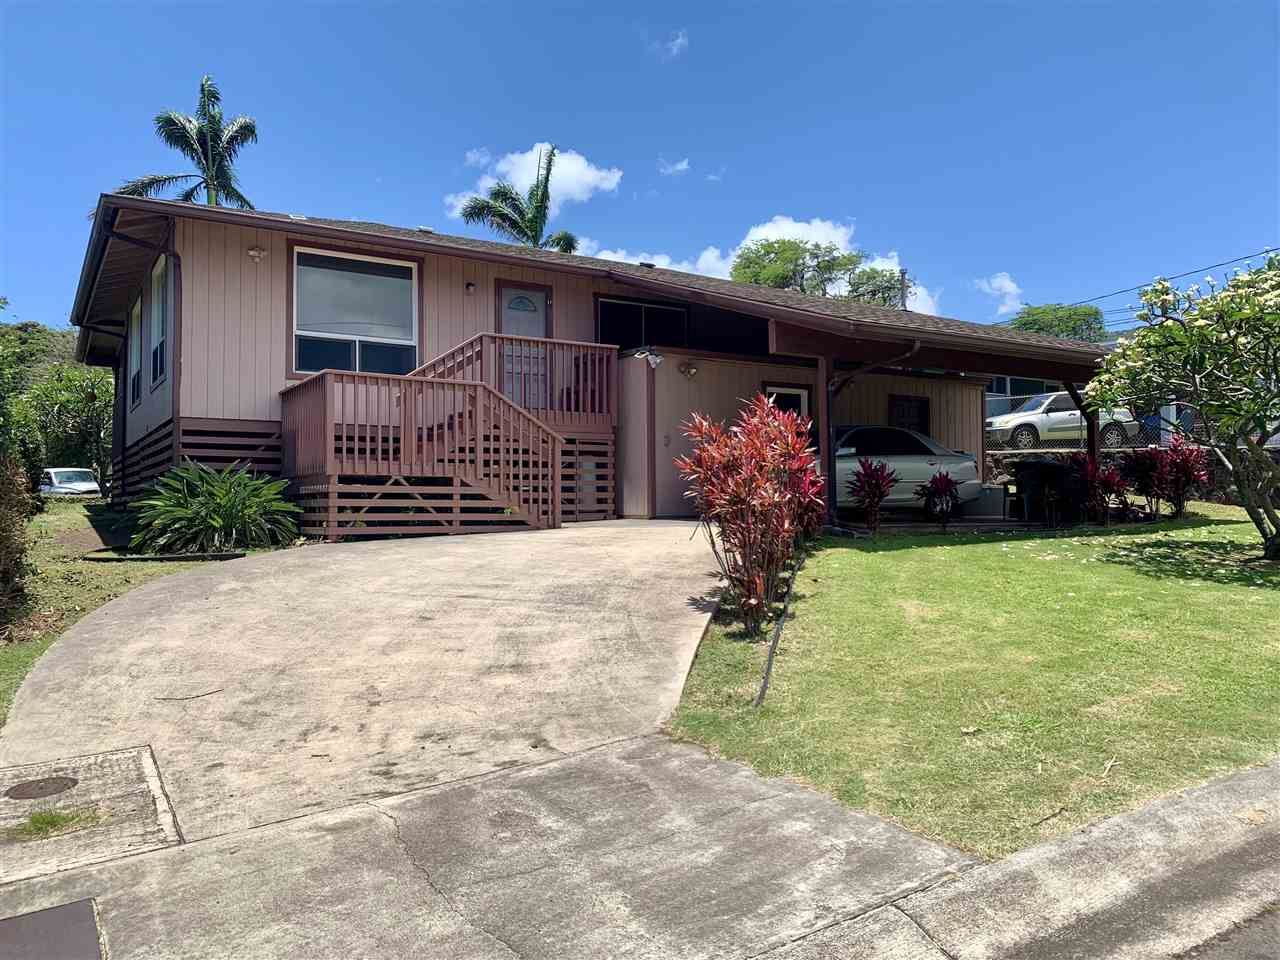 Photo of Unit 1B Uala Pue Pl, Kaunakakai, HI 96748 (MLS # 387056)